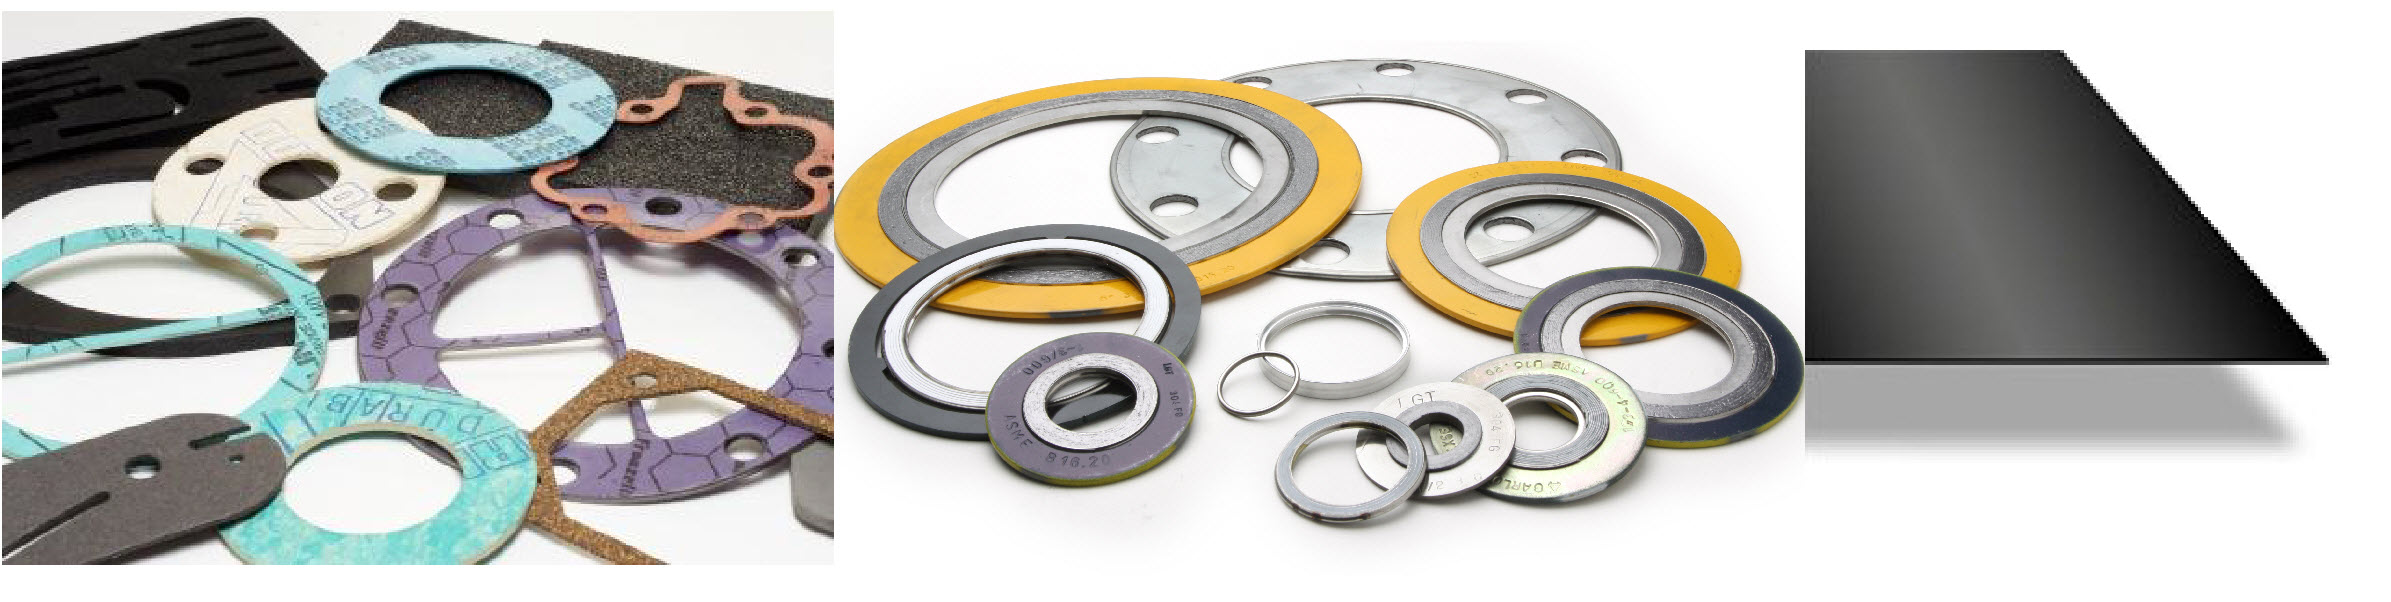 Grafoil Gaskets: Garlock, GrafTech, Thermoseal | Seal